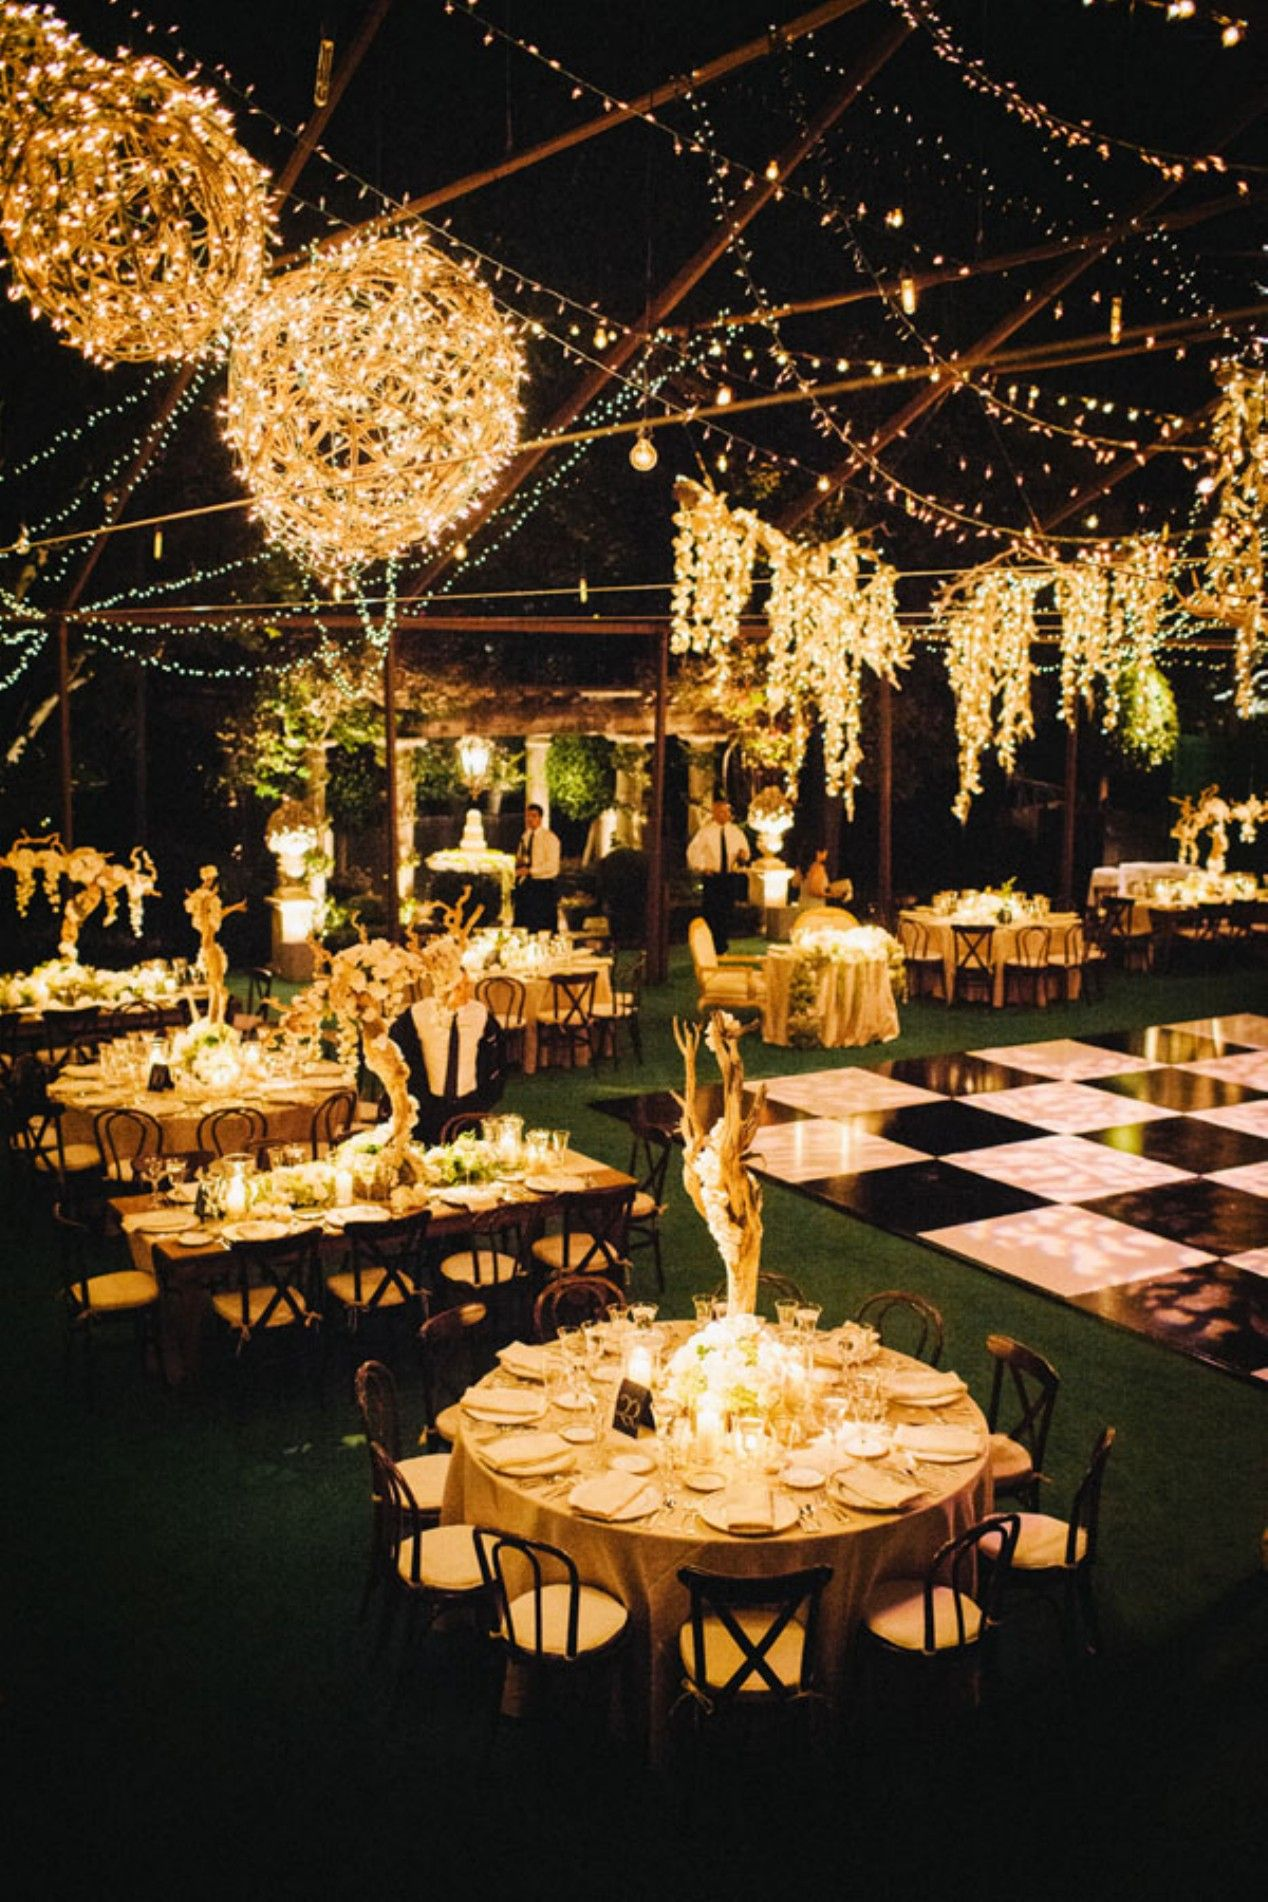 Wedding decoration ideas outside   Great Outdoor Wedding Decoration Ideas  Party Ideas  Pinterest